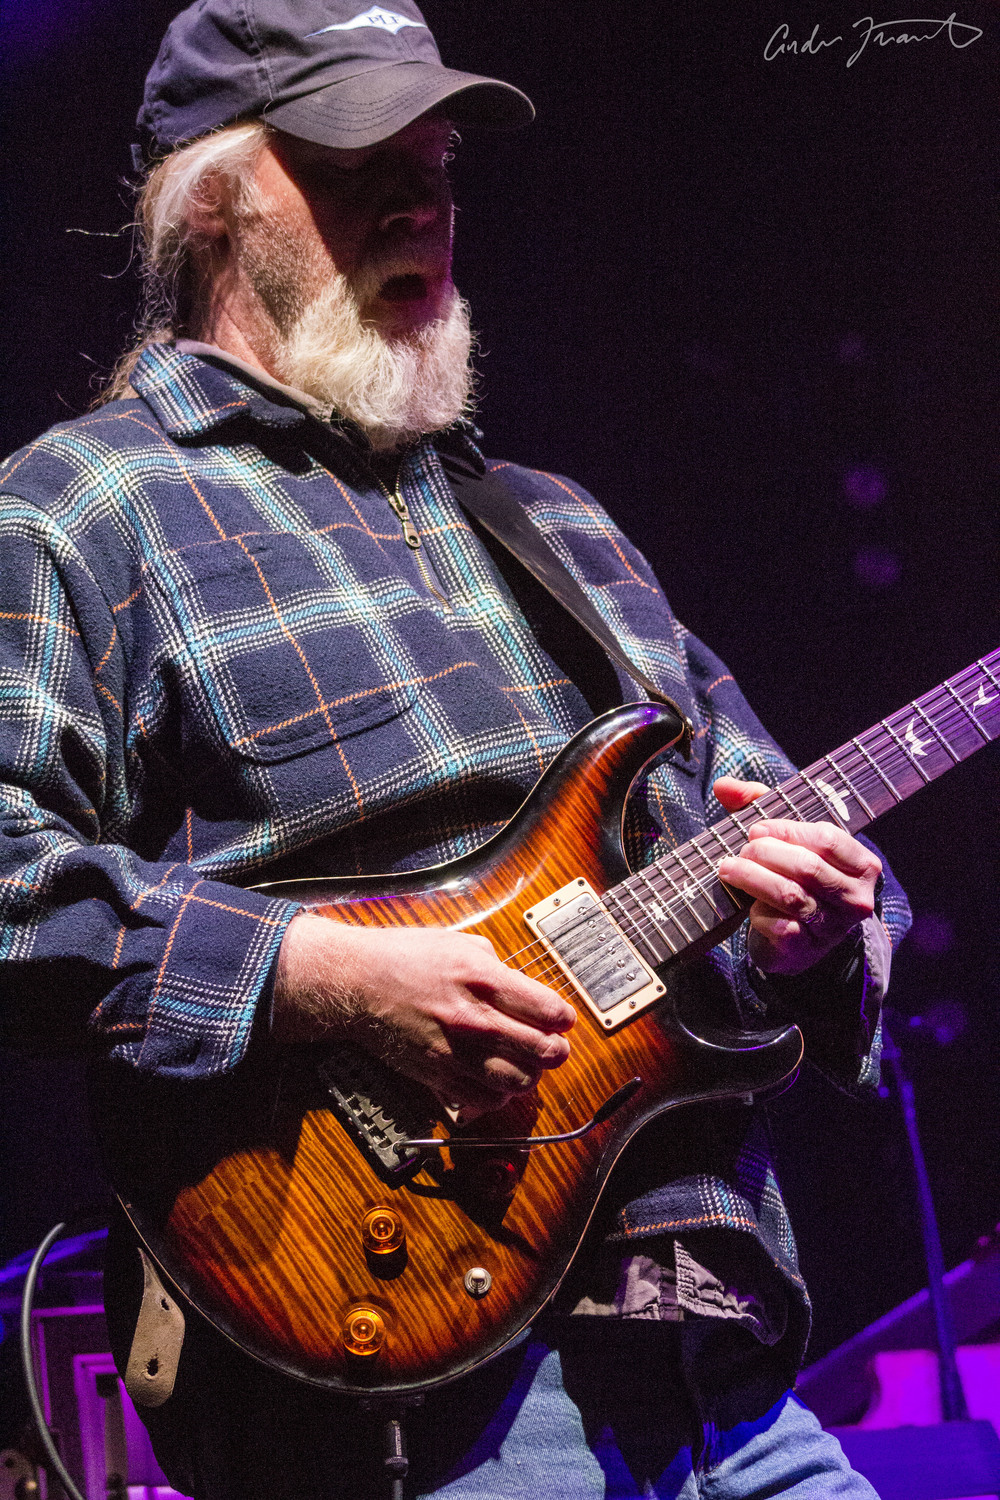 Jimmy Herring/Widespread Panic